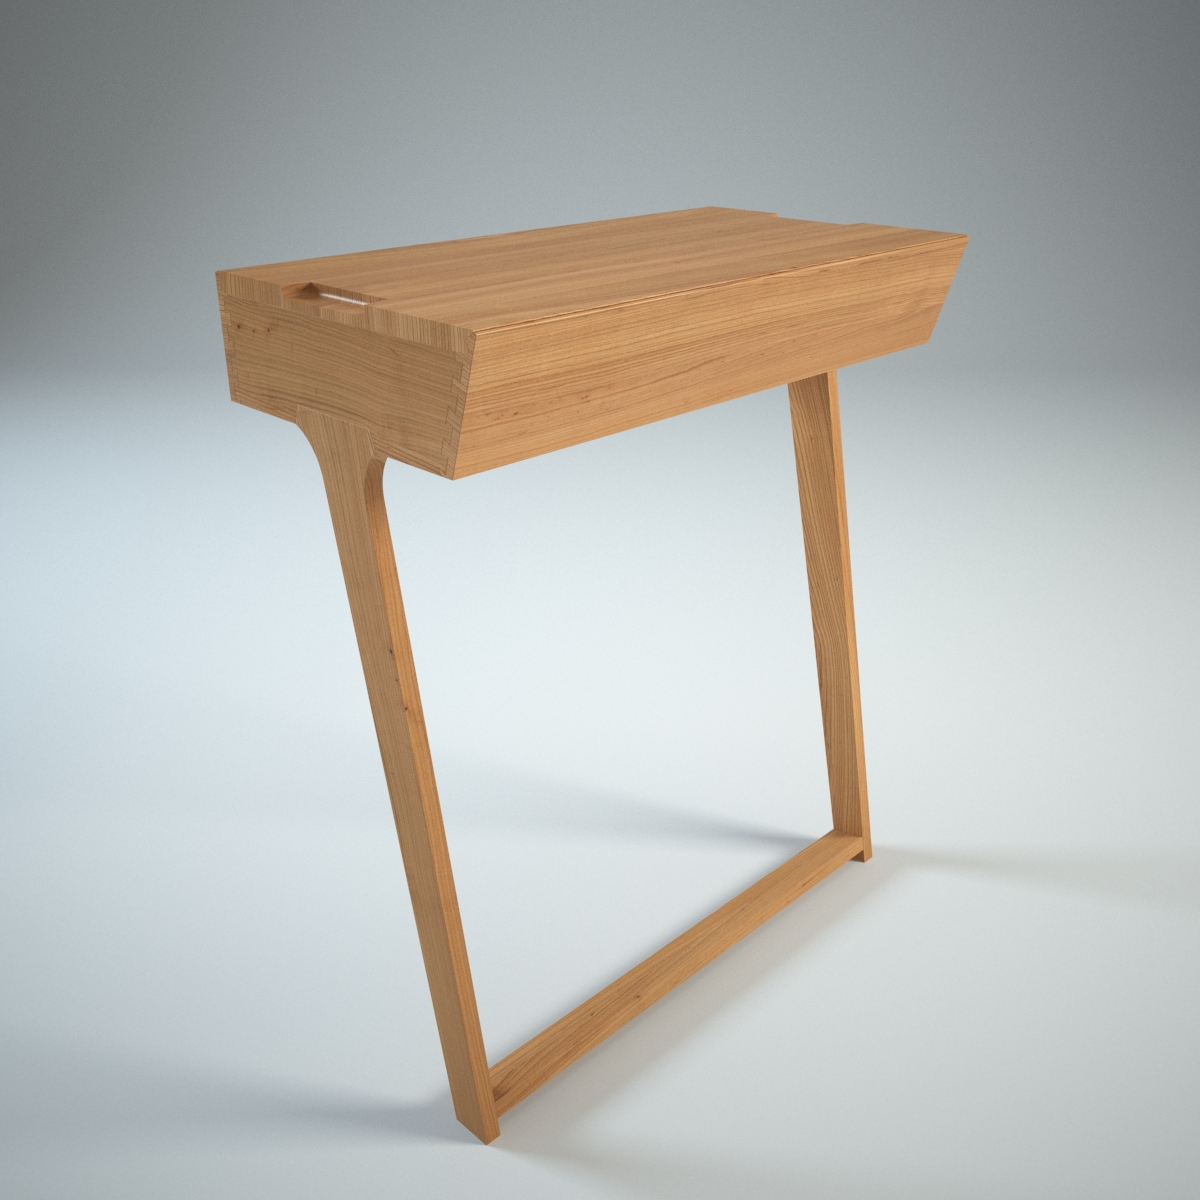 Quello table 3d model max for Table 3d model